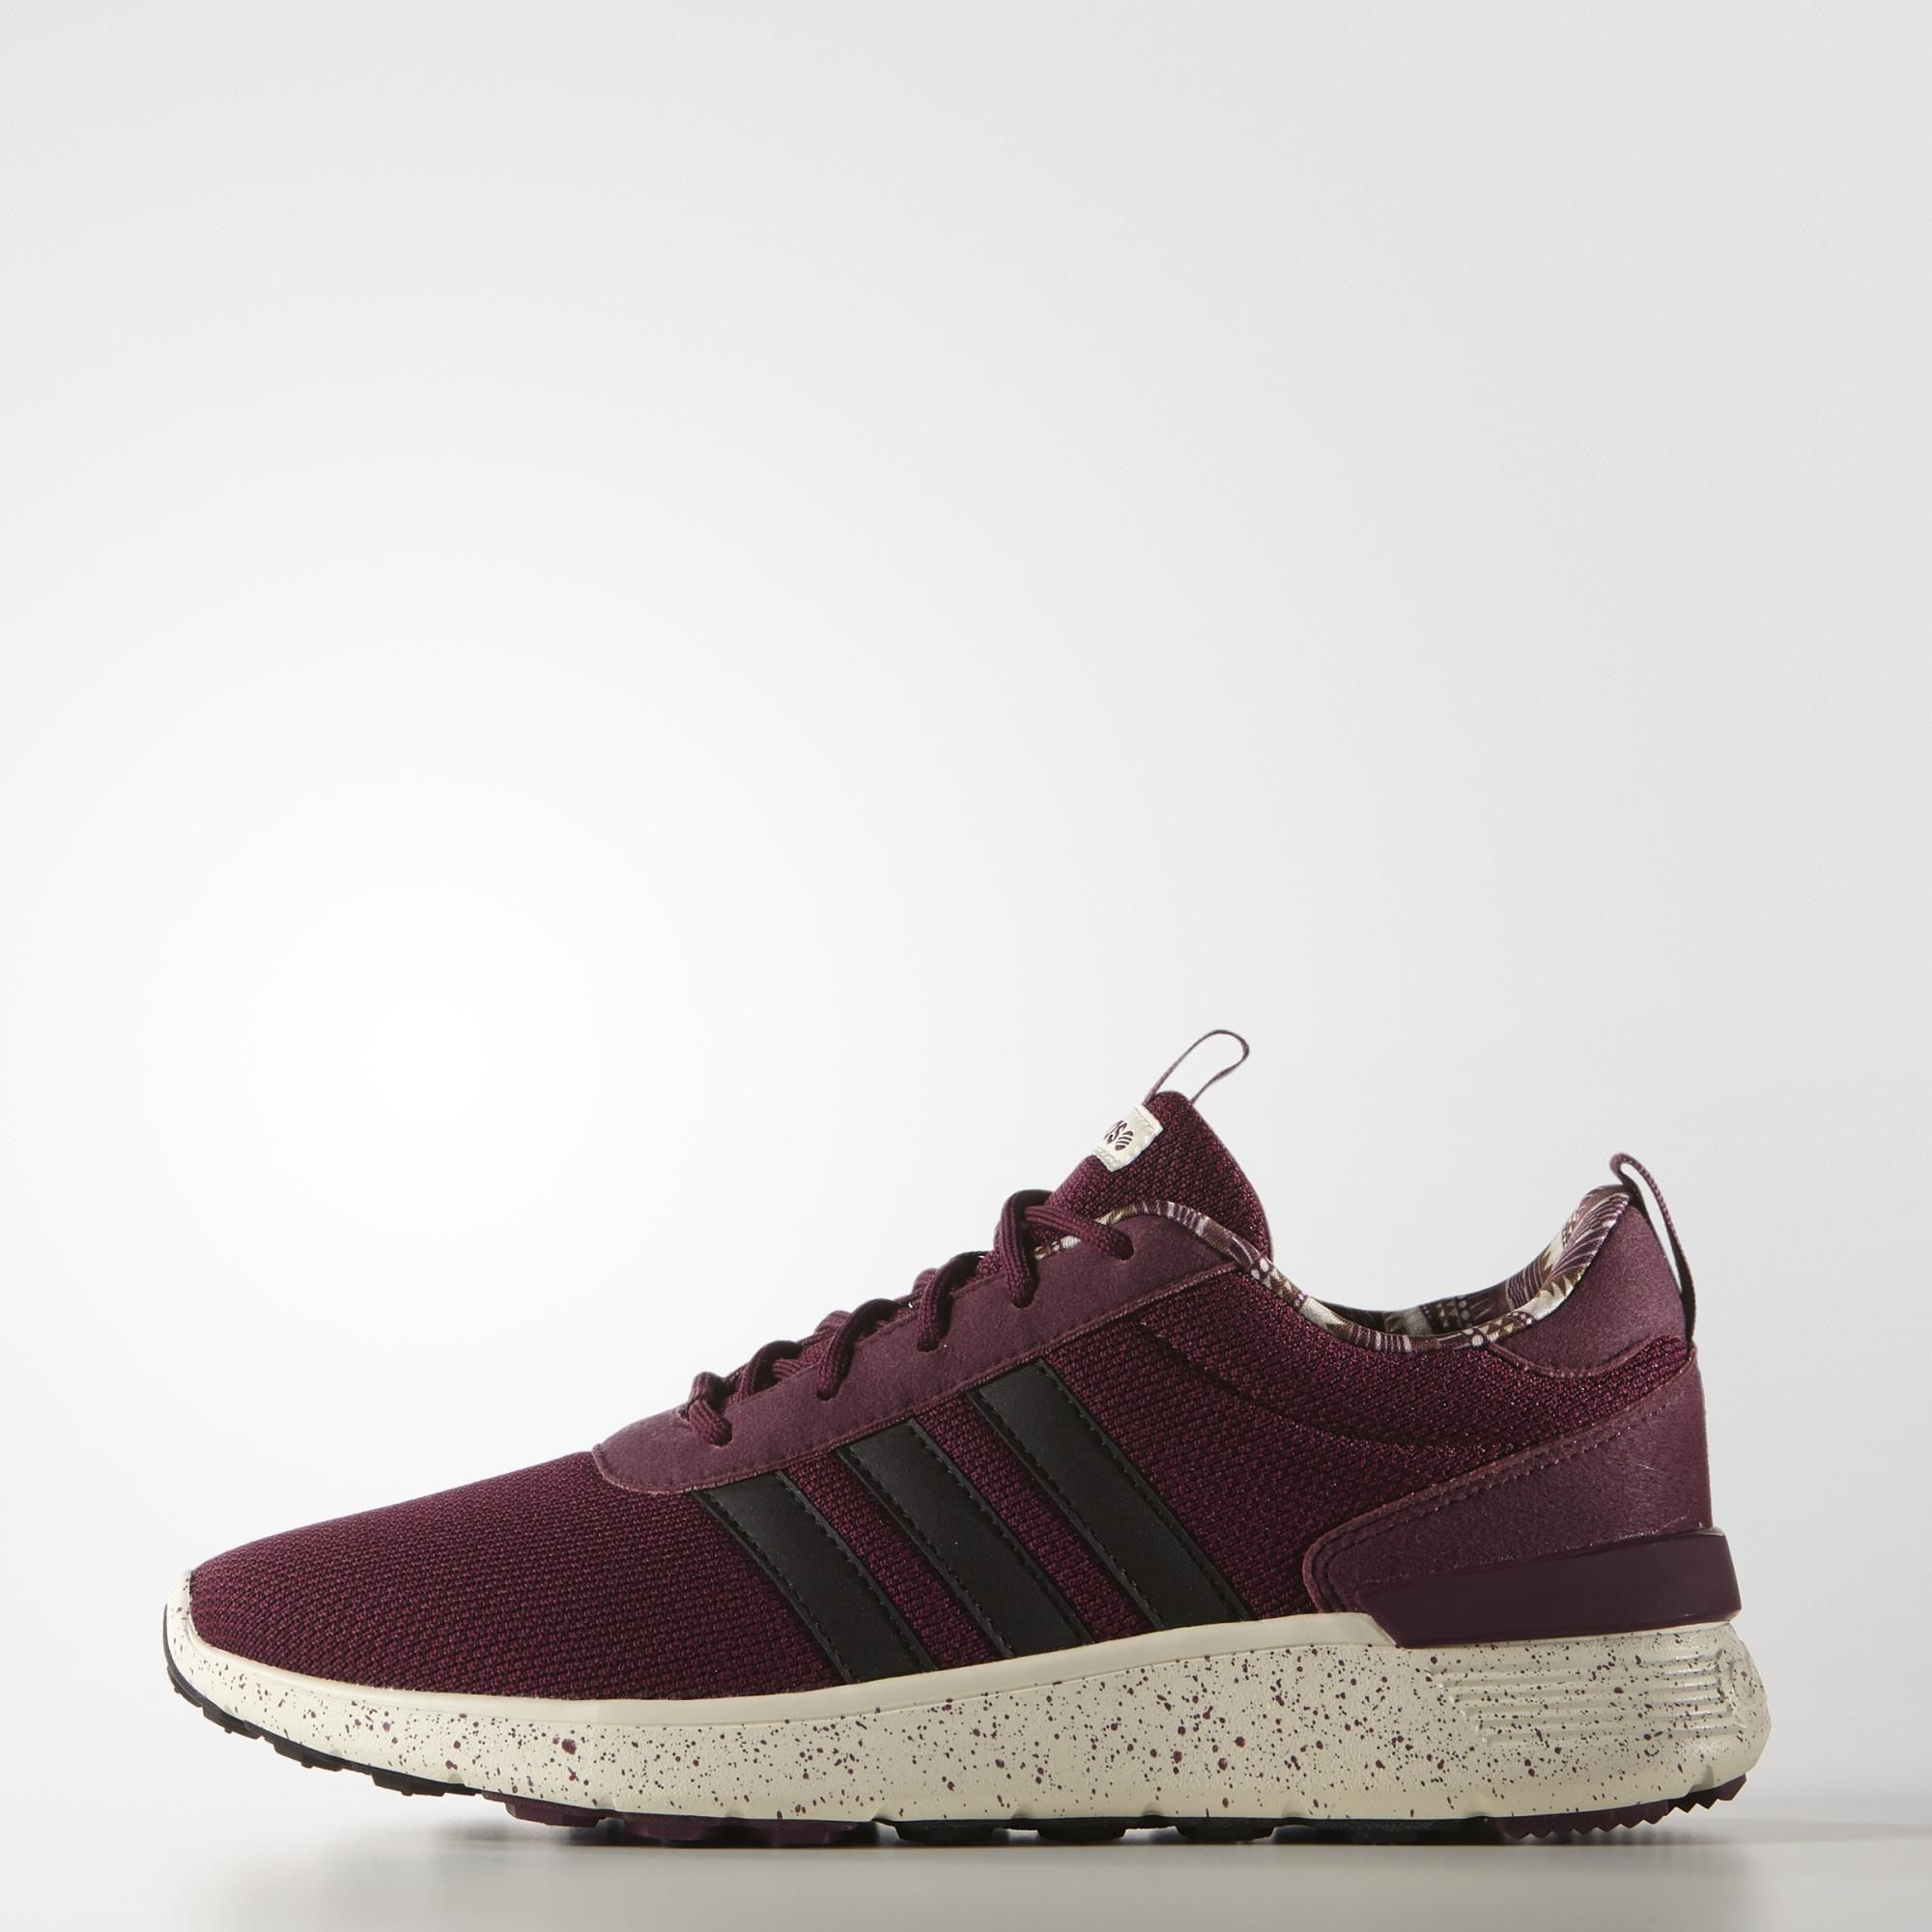 O S Red Lite Racer Shoes Adidas Us E H Pinterest Wtr yqw8YUqxfH